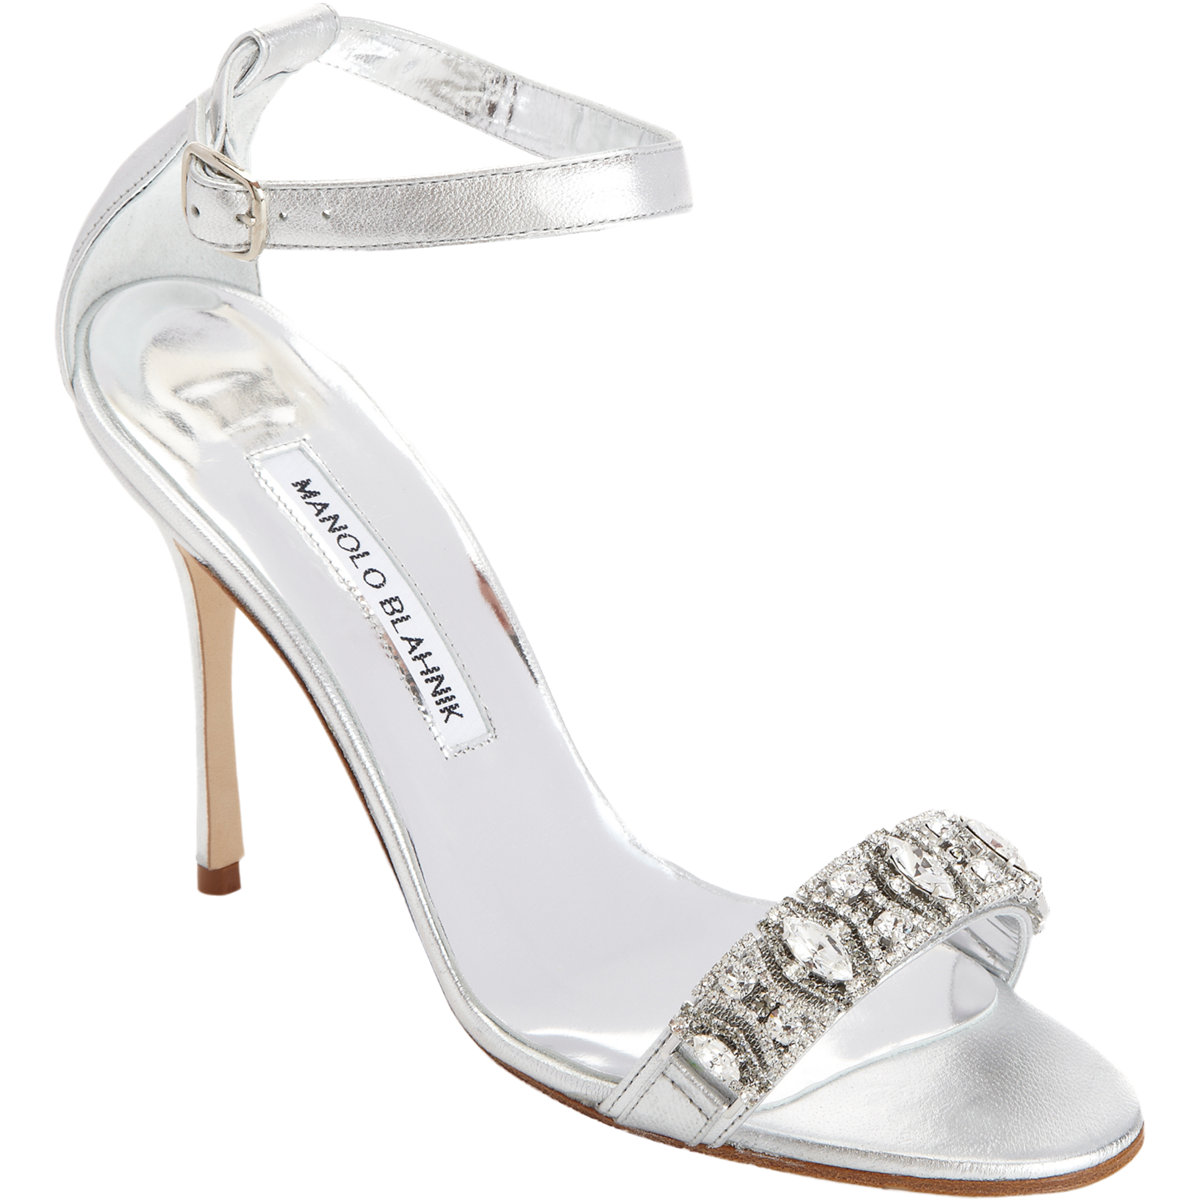 MANOLO BLAHNIK Chamosca buy HERE